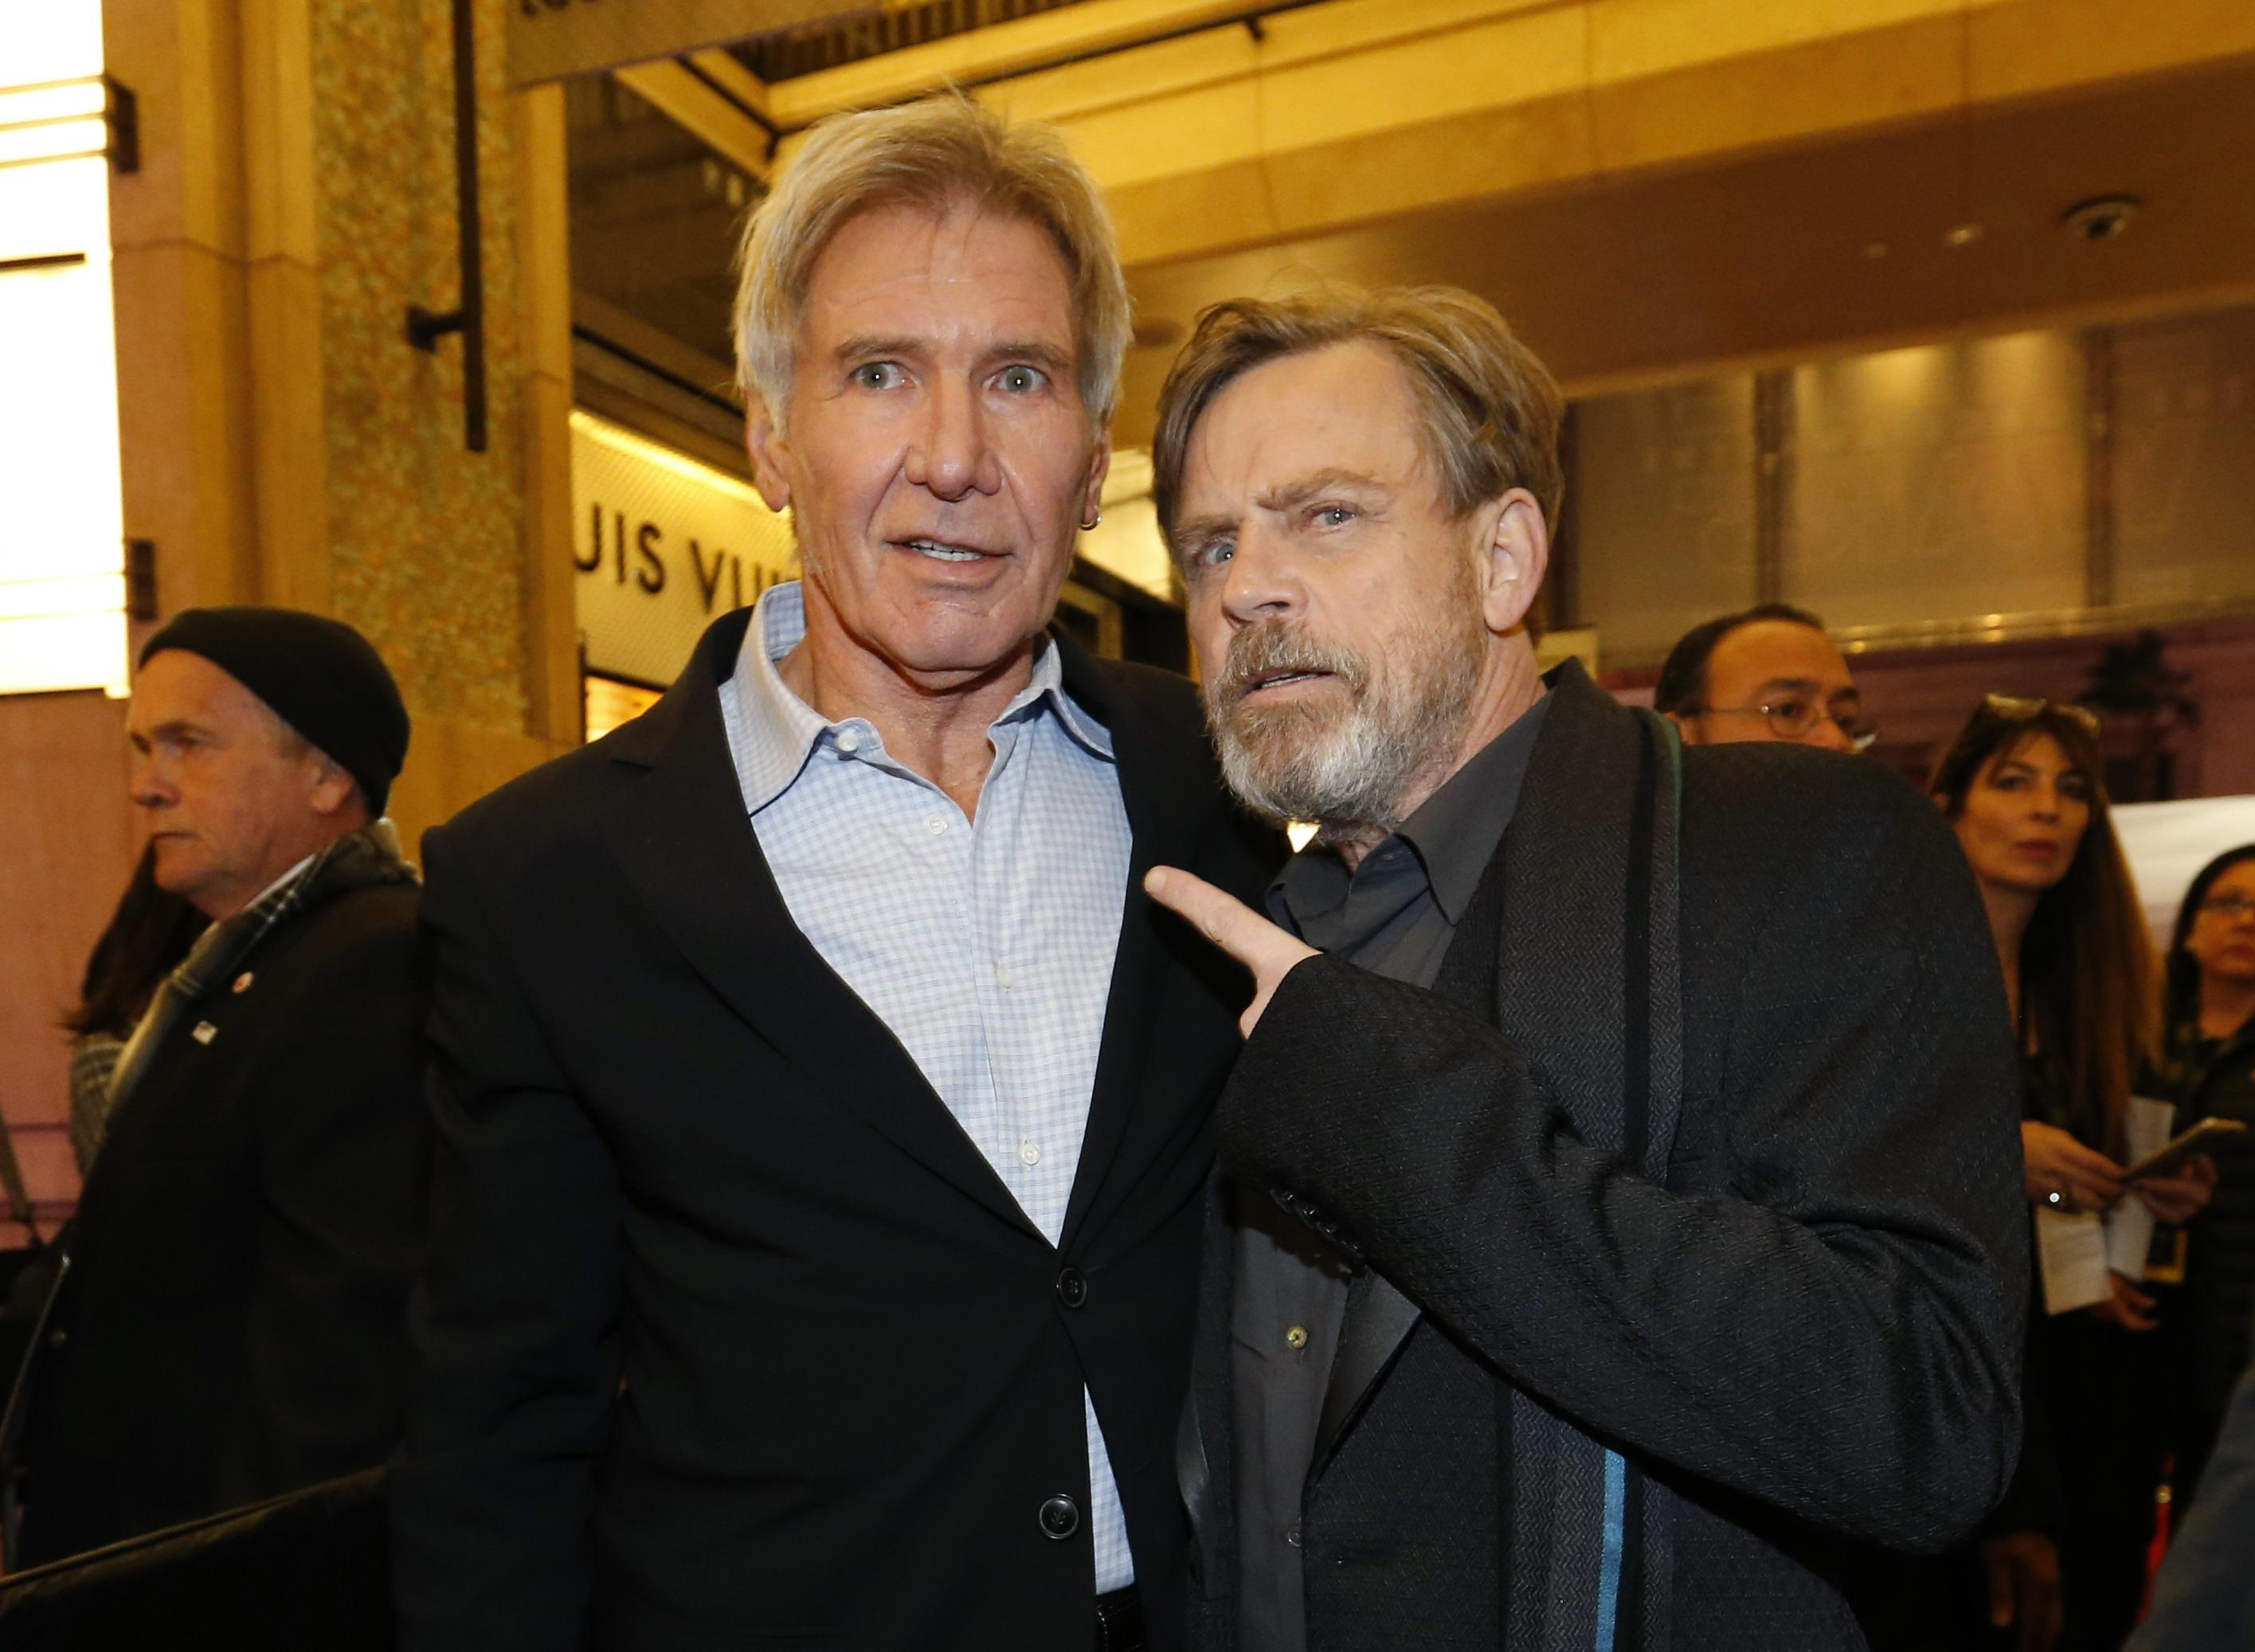 Harrison Ford and Mark Hamill